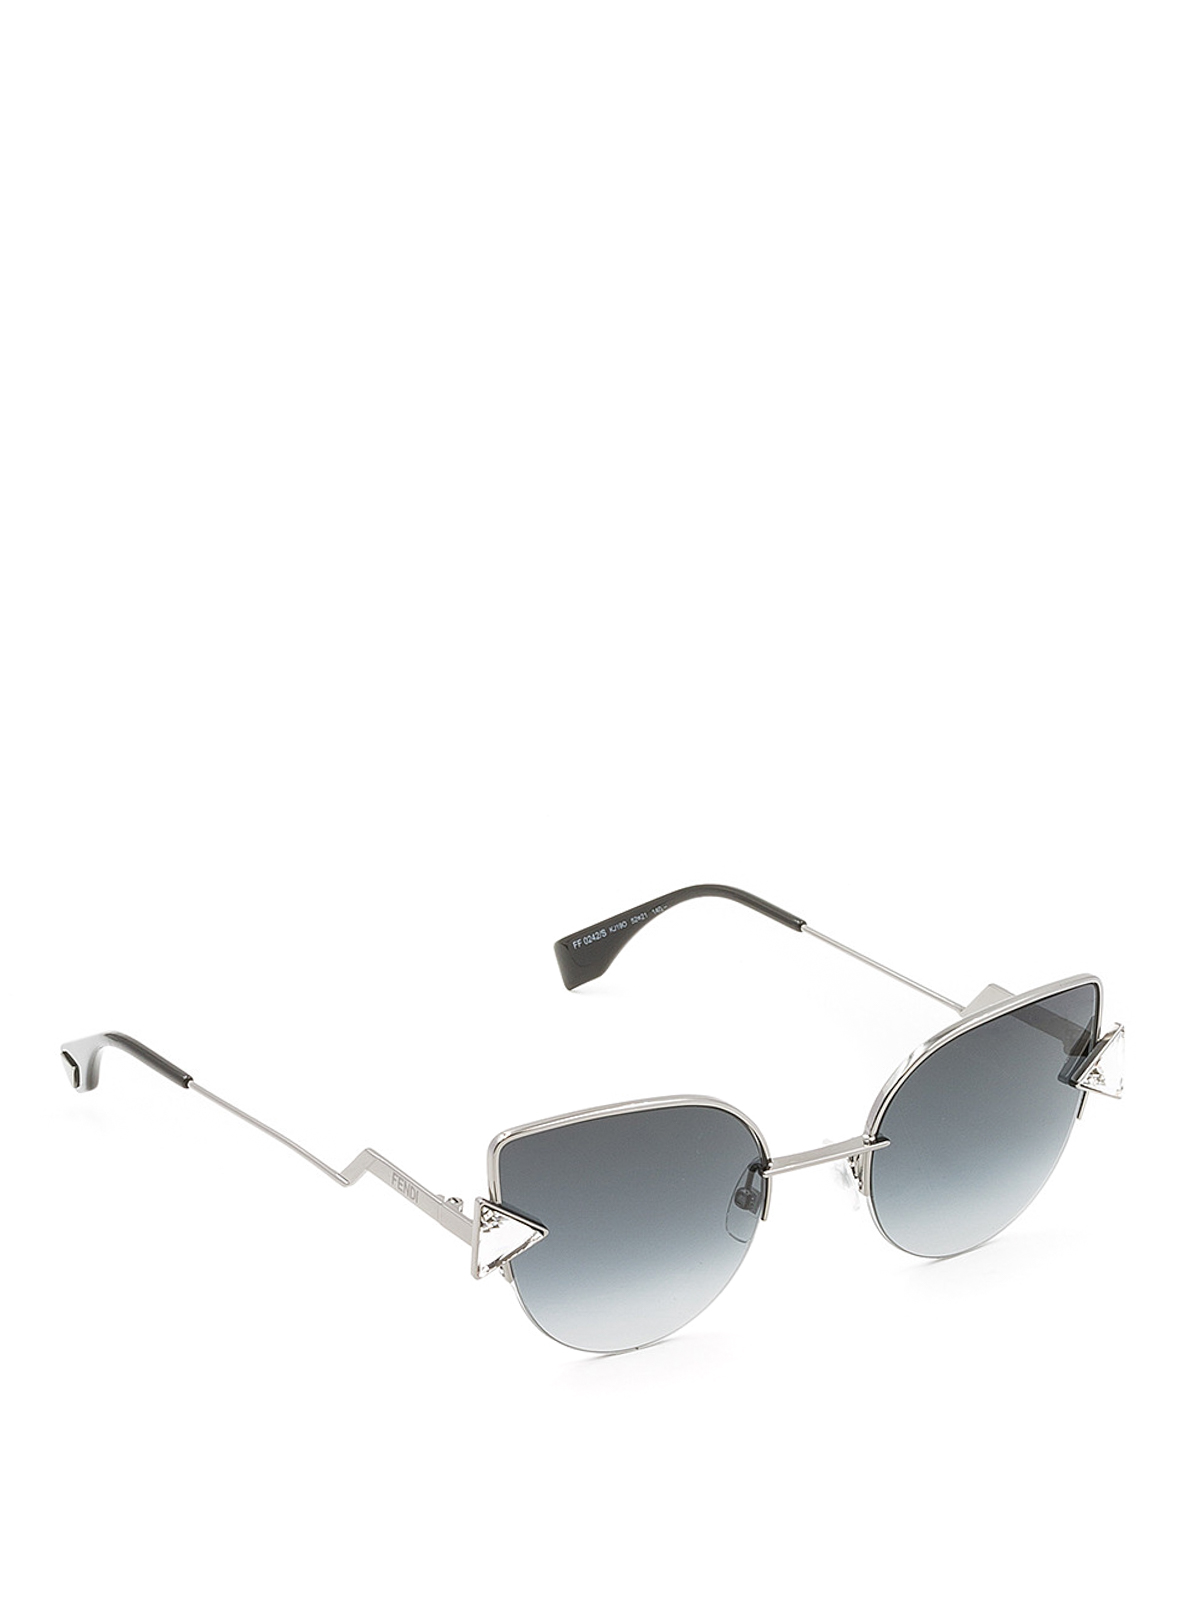 78eb0c8b86da Fendi - Rainbow cat eye sunglasses - sunglasses - FF0242SKJ190 ...